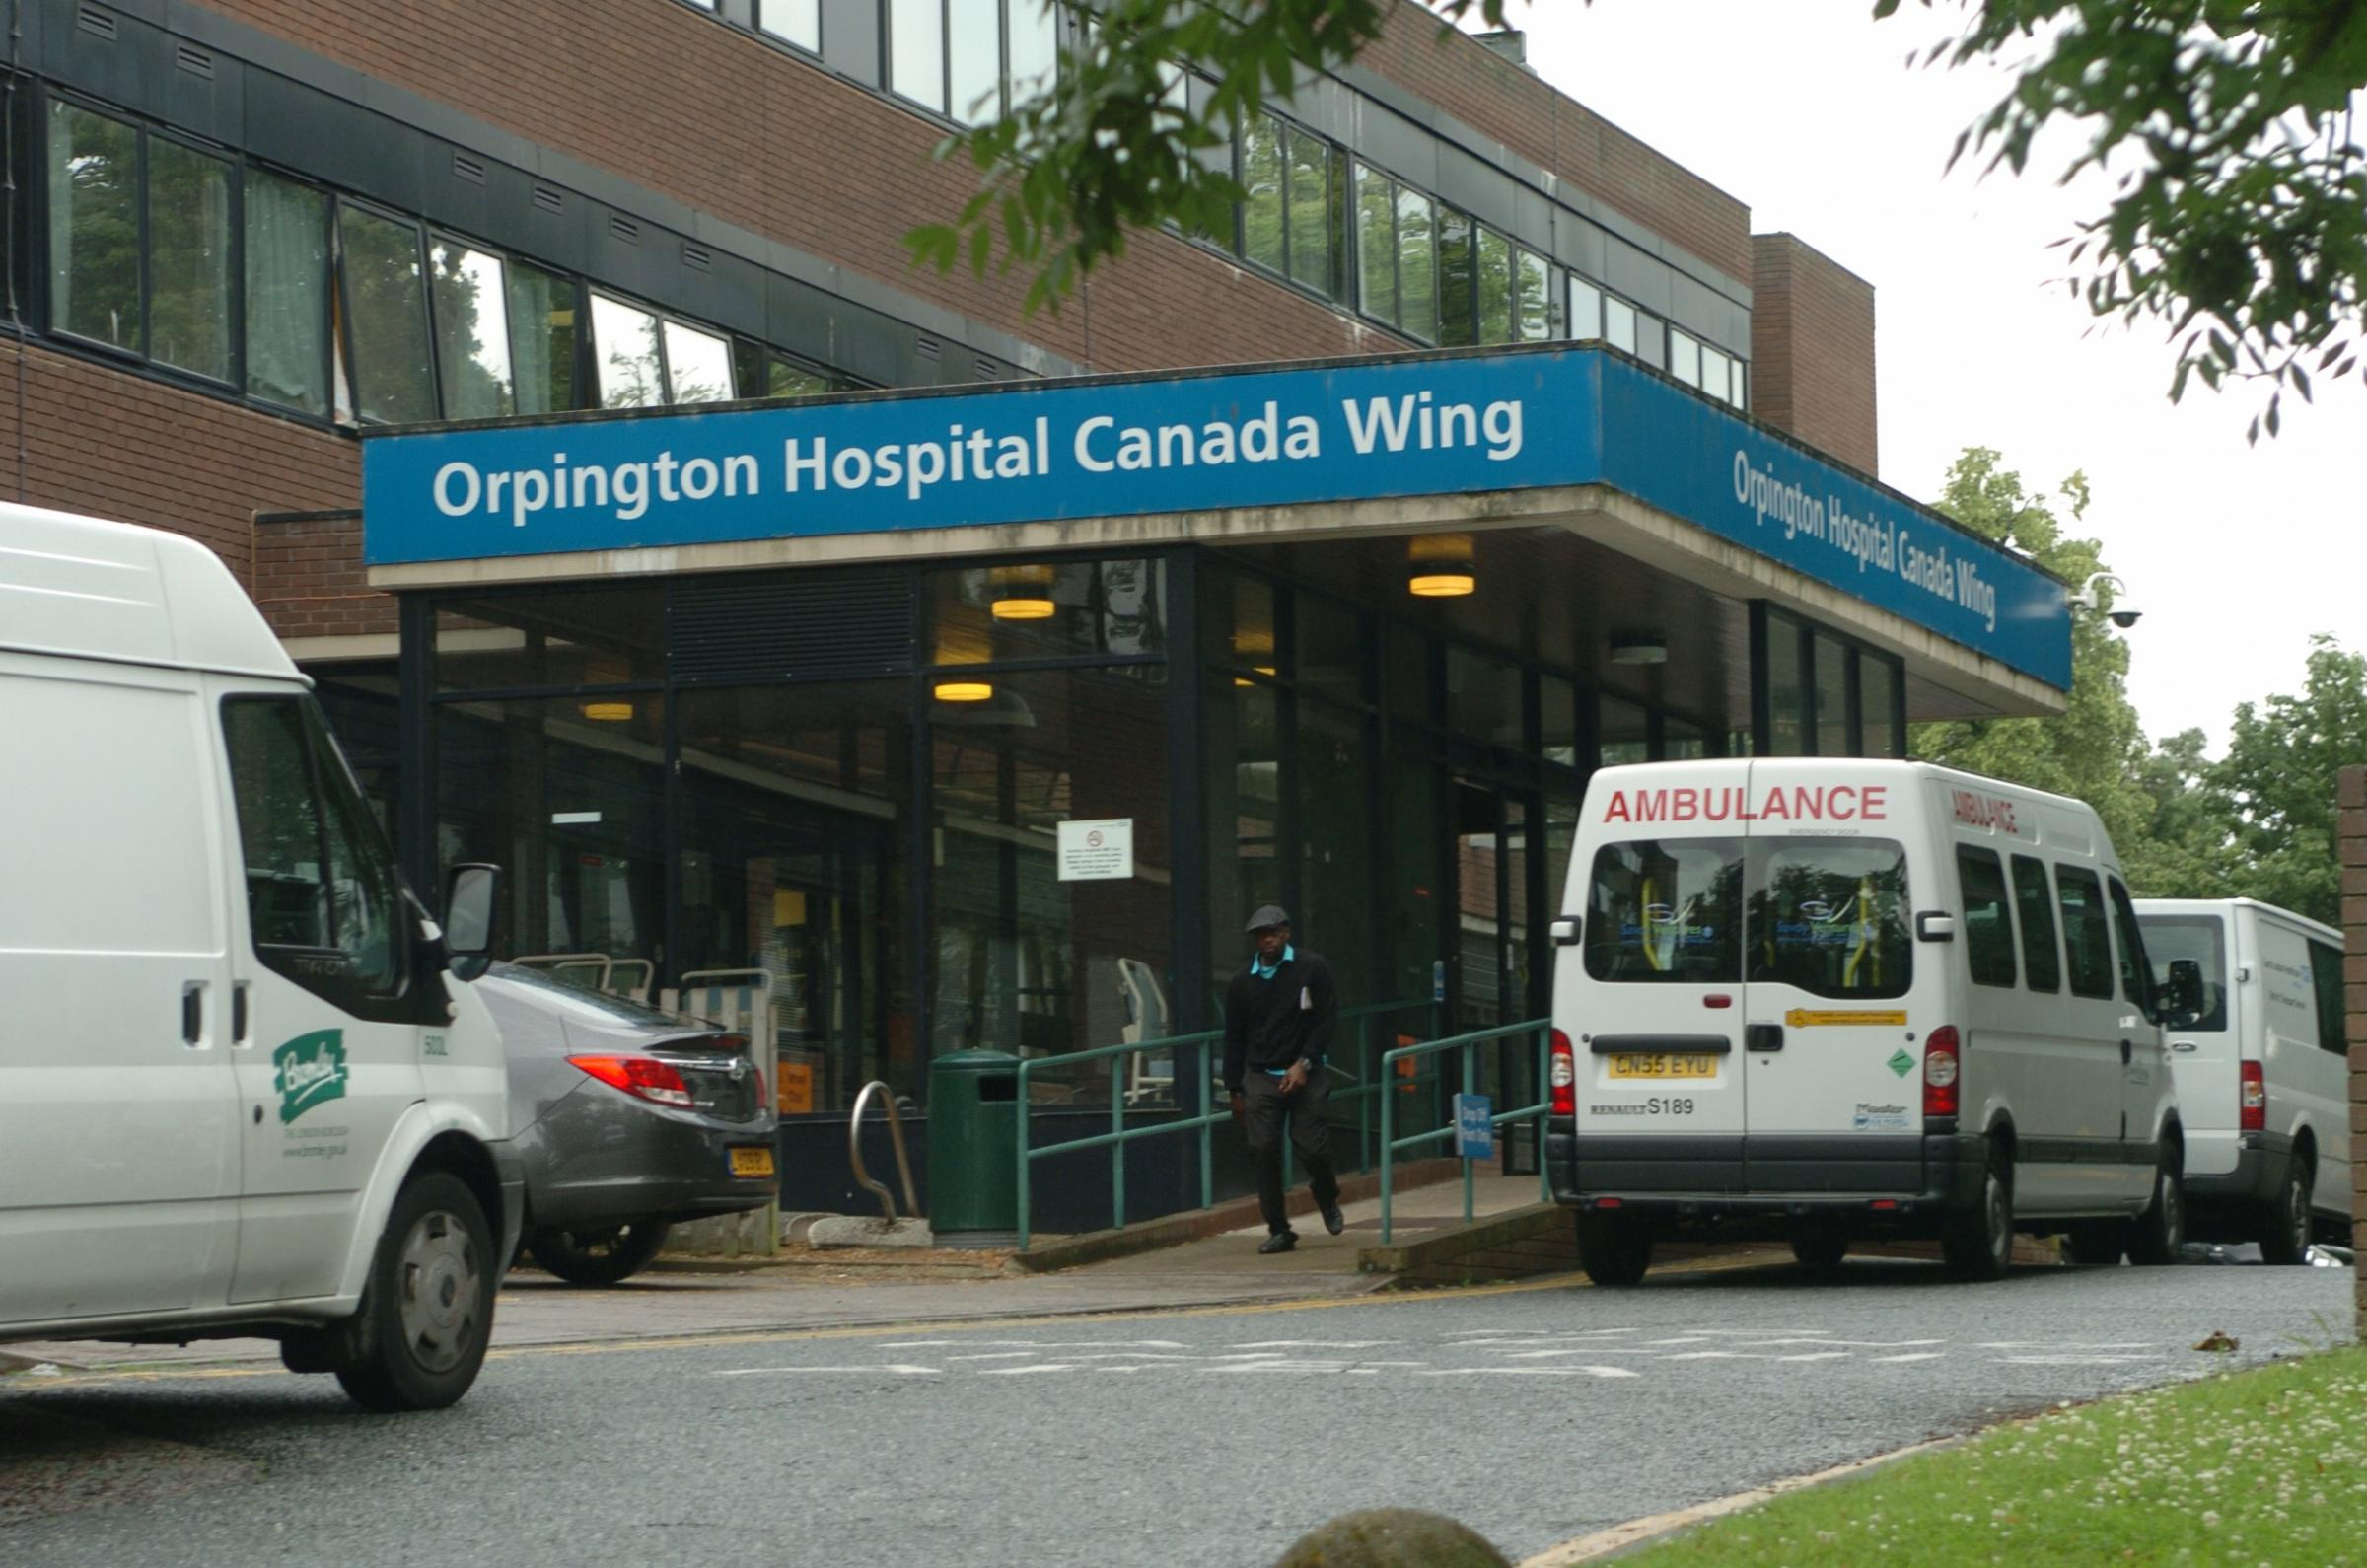 The bus will continue to run past Orpington Hospital